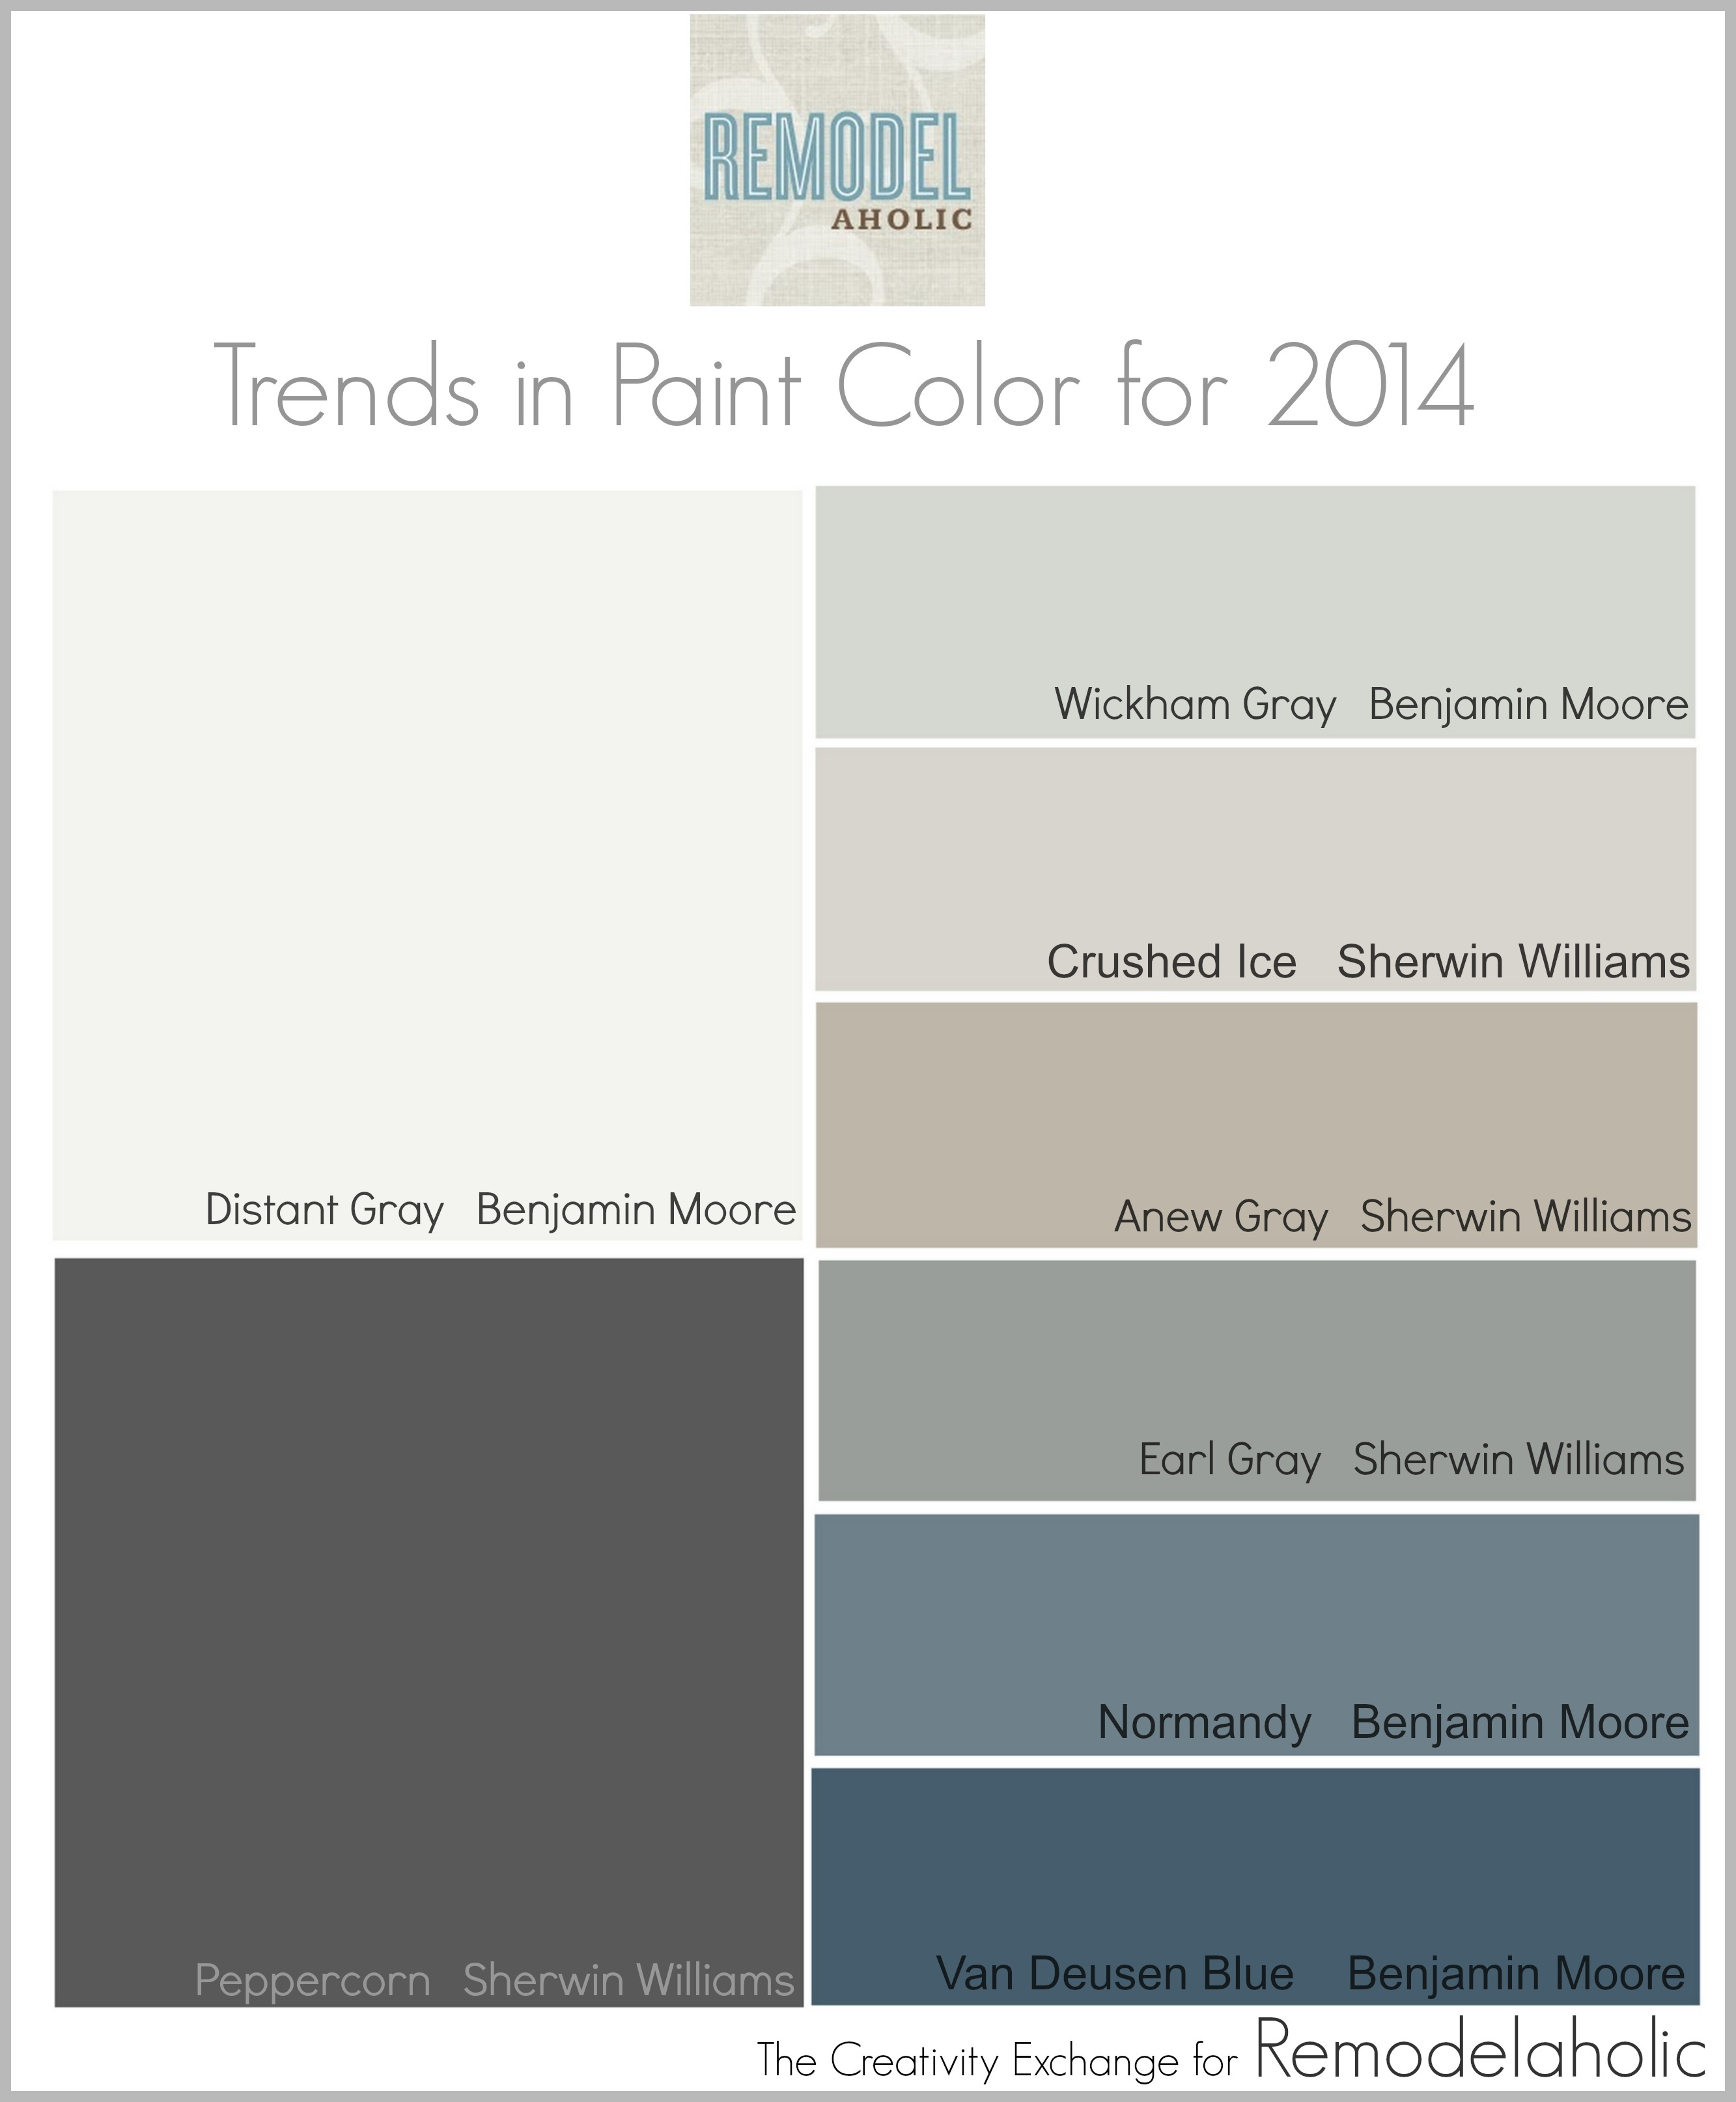 Paint Colors For 2014 - Home is Best Place to Return